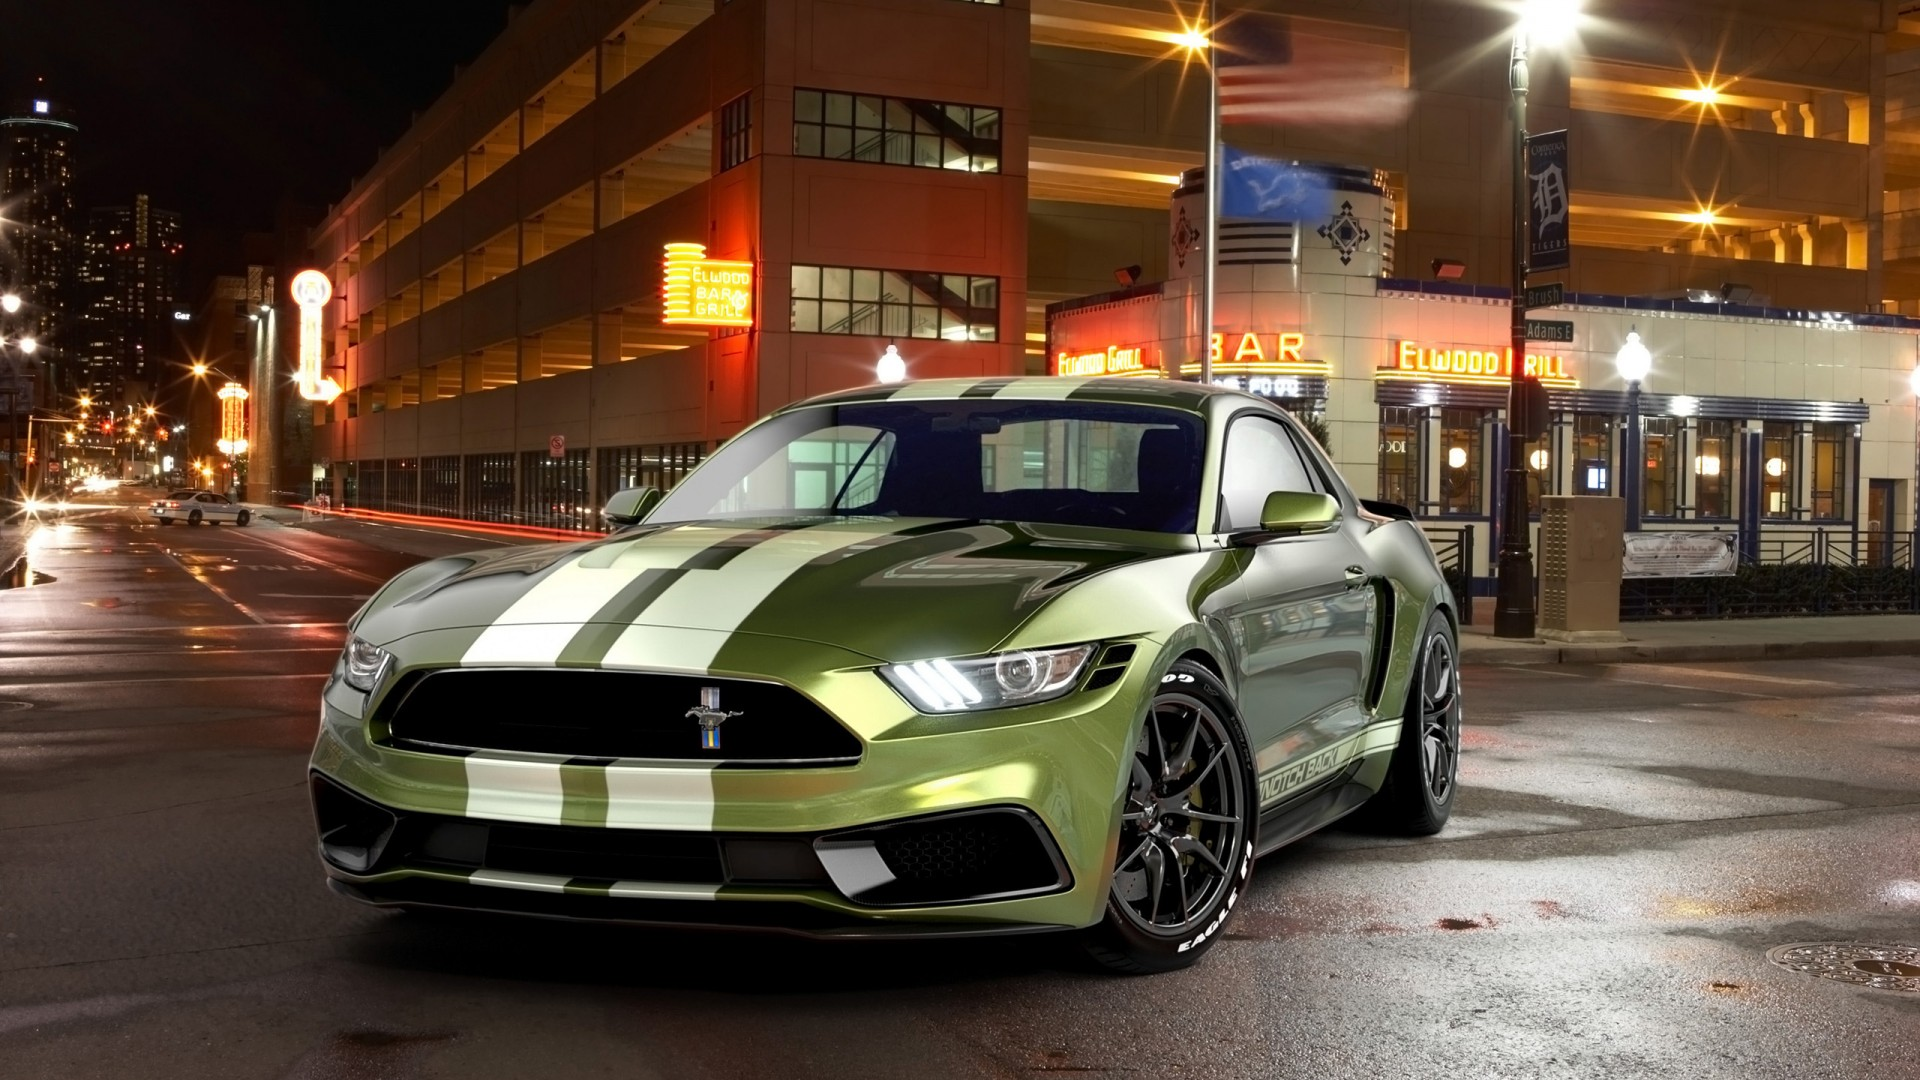 2018 Ford Mustang Gt >> 2017 Ford Mustang NotchBack Design Wallpaper   HD Car Wallpapers   ID #7651